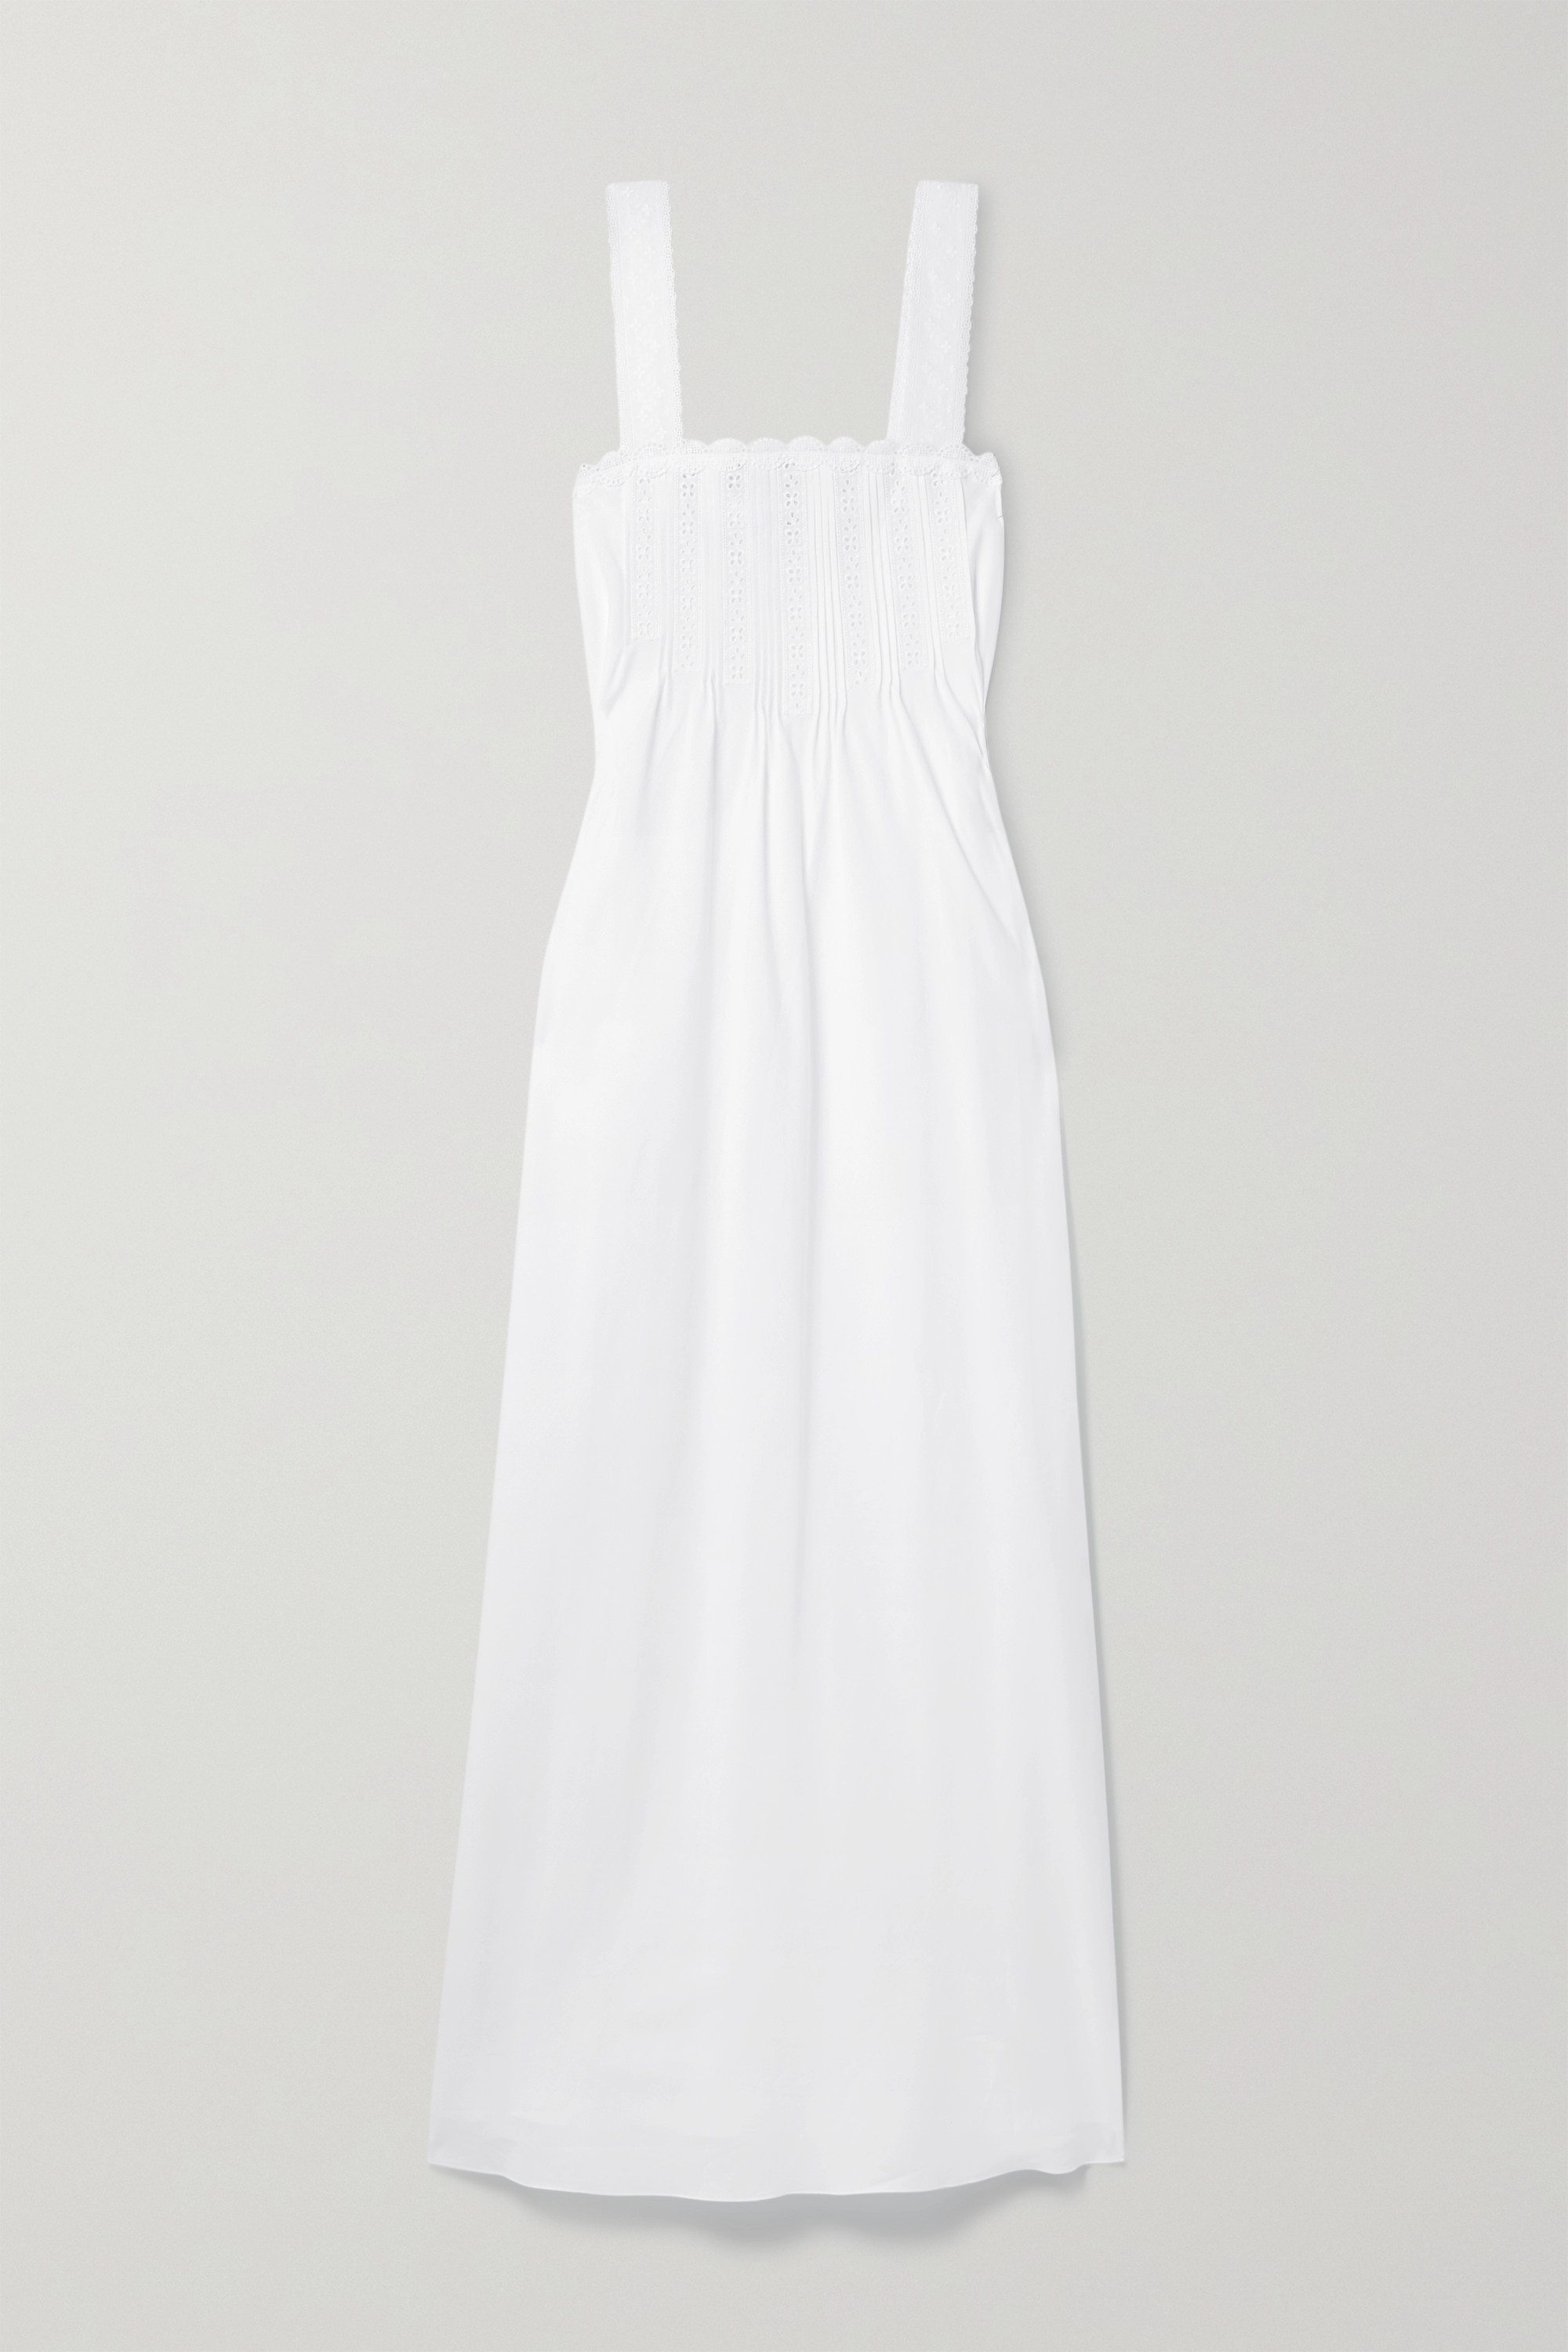 Loretta Caponi Maddalena lace-trimmed broderie anglaise cotton-voile nightdress